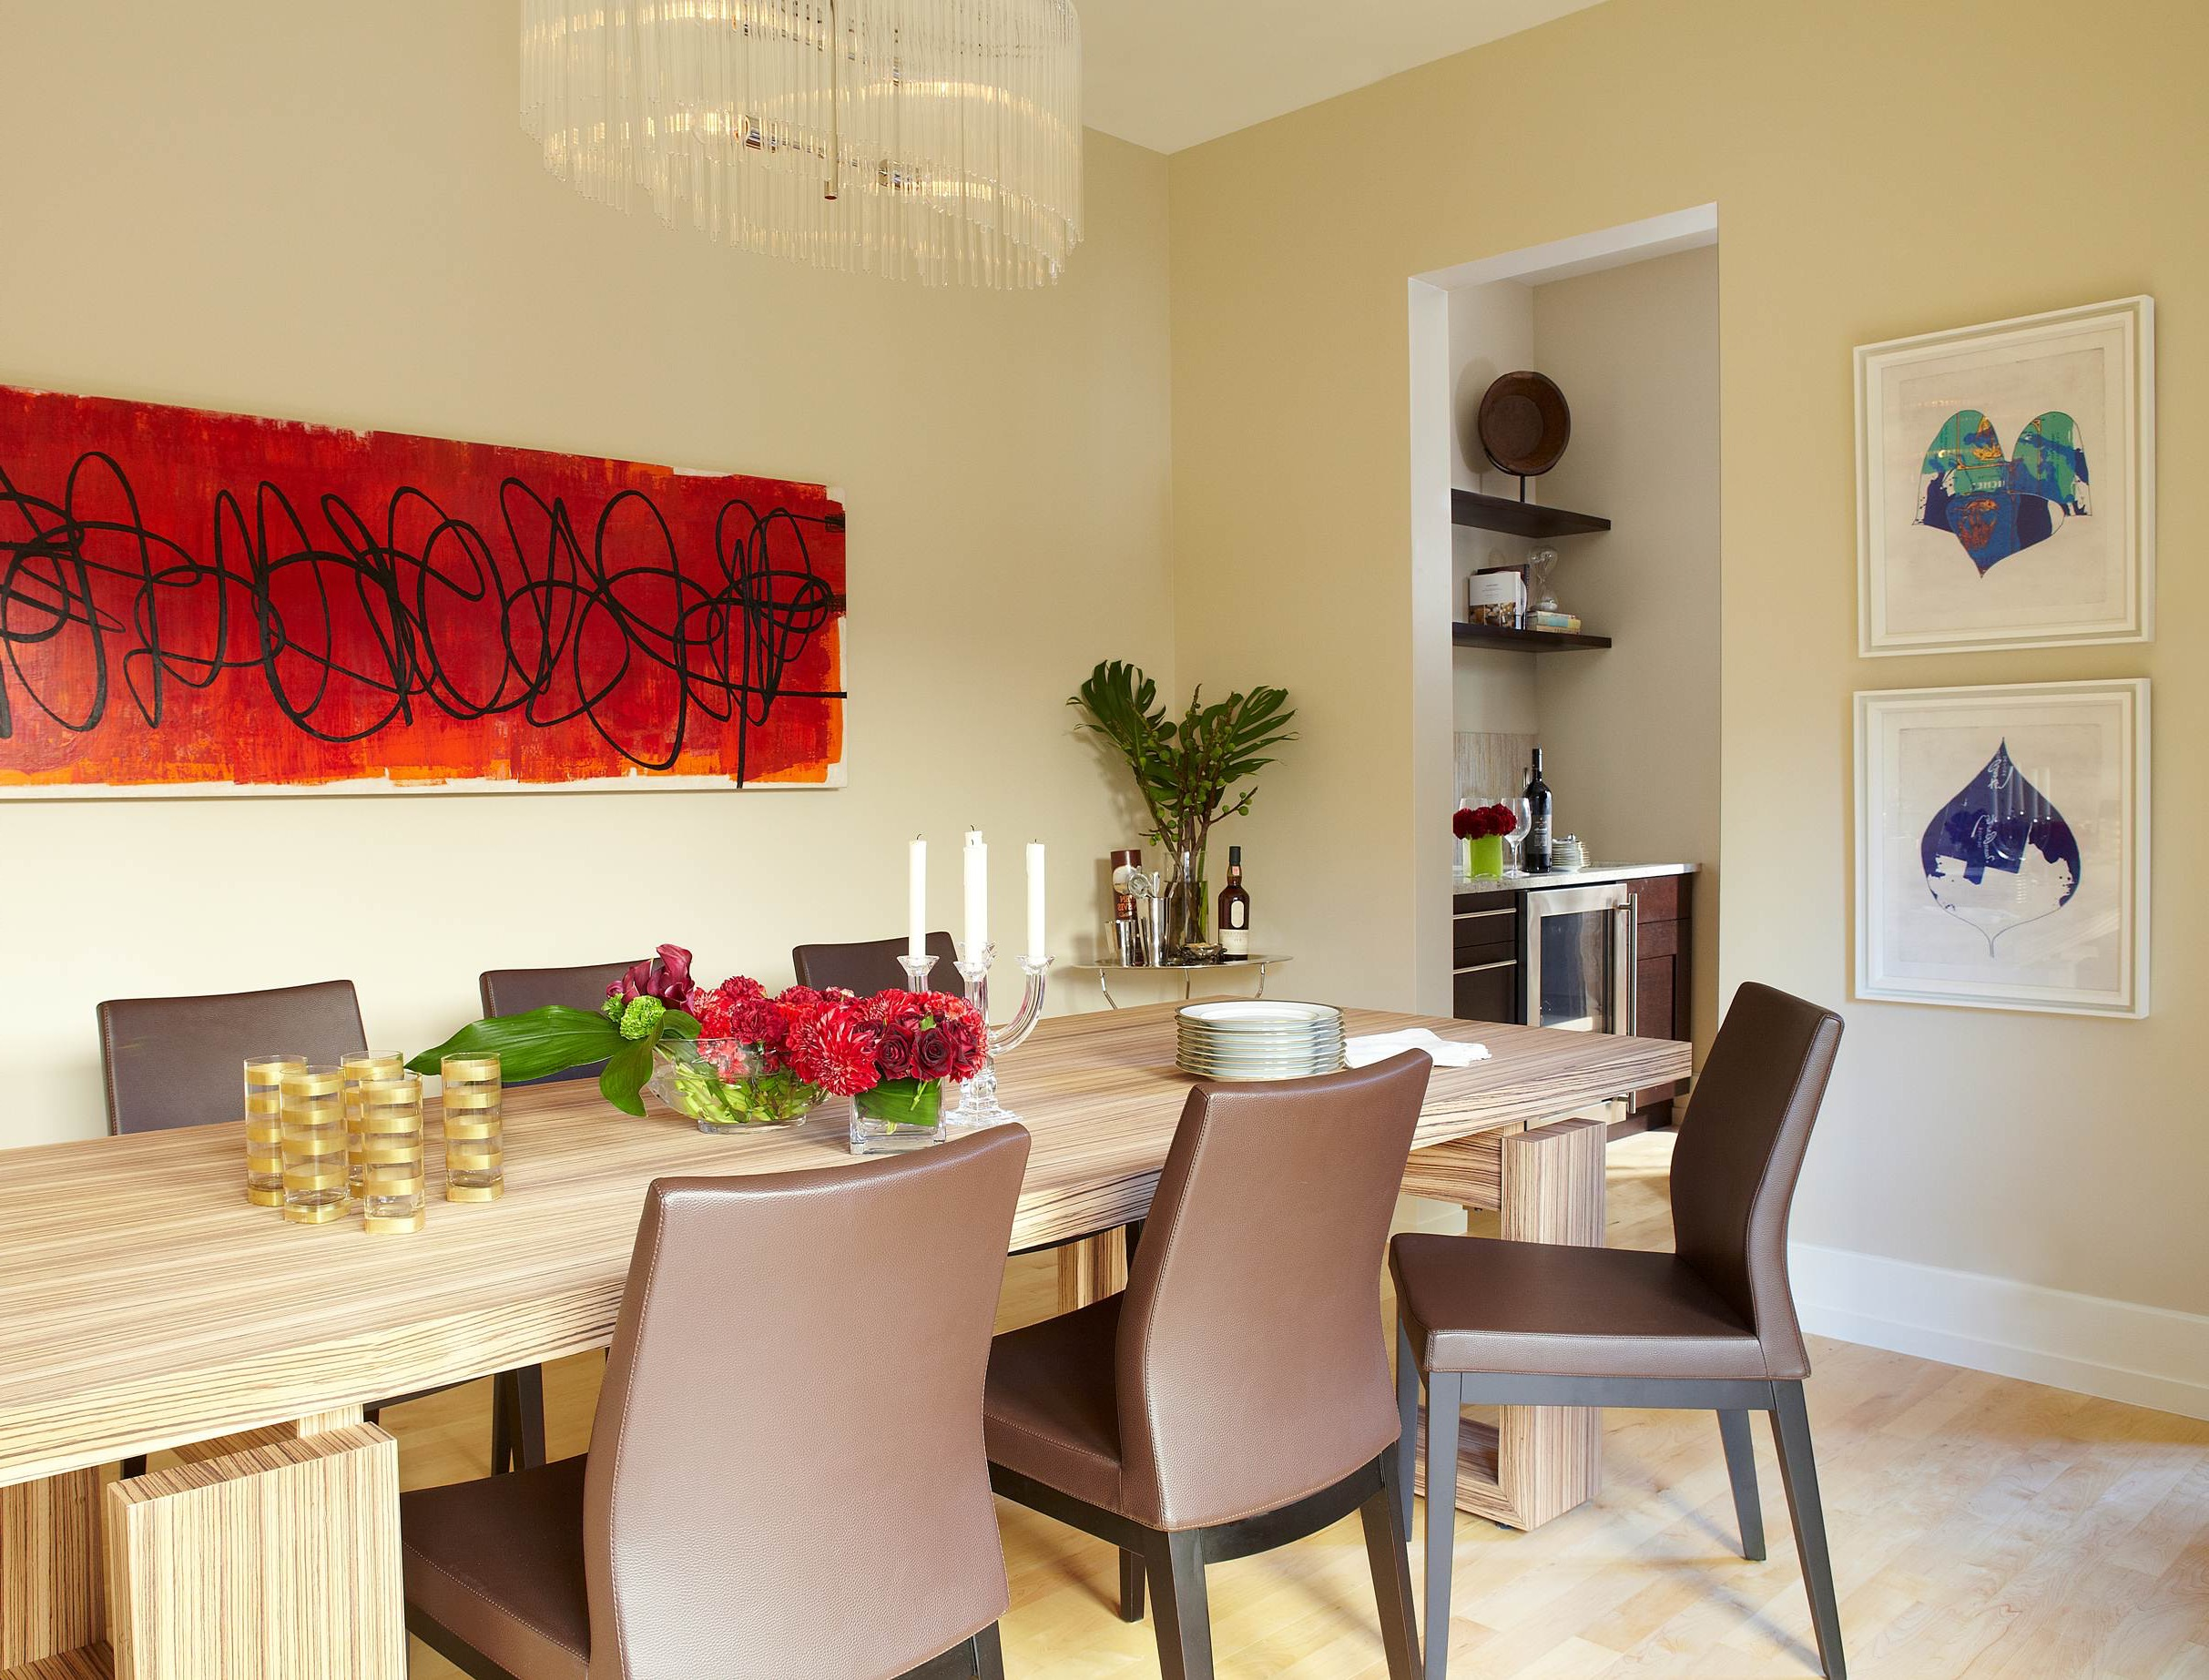 Modern Dining Room With Beauty Vibrant Artwork (Image 15 of 30)